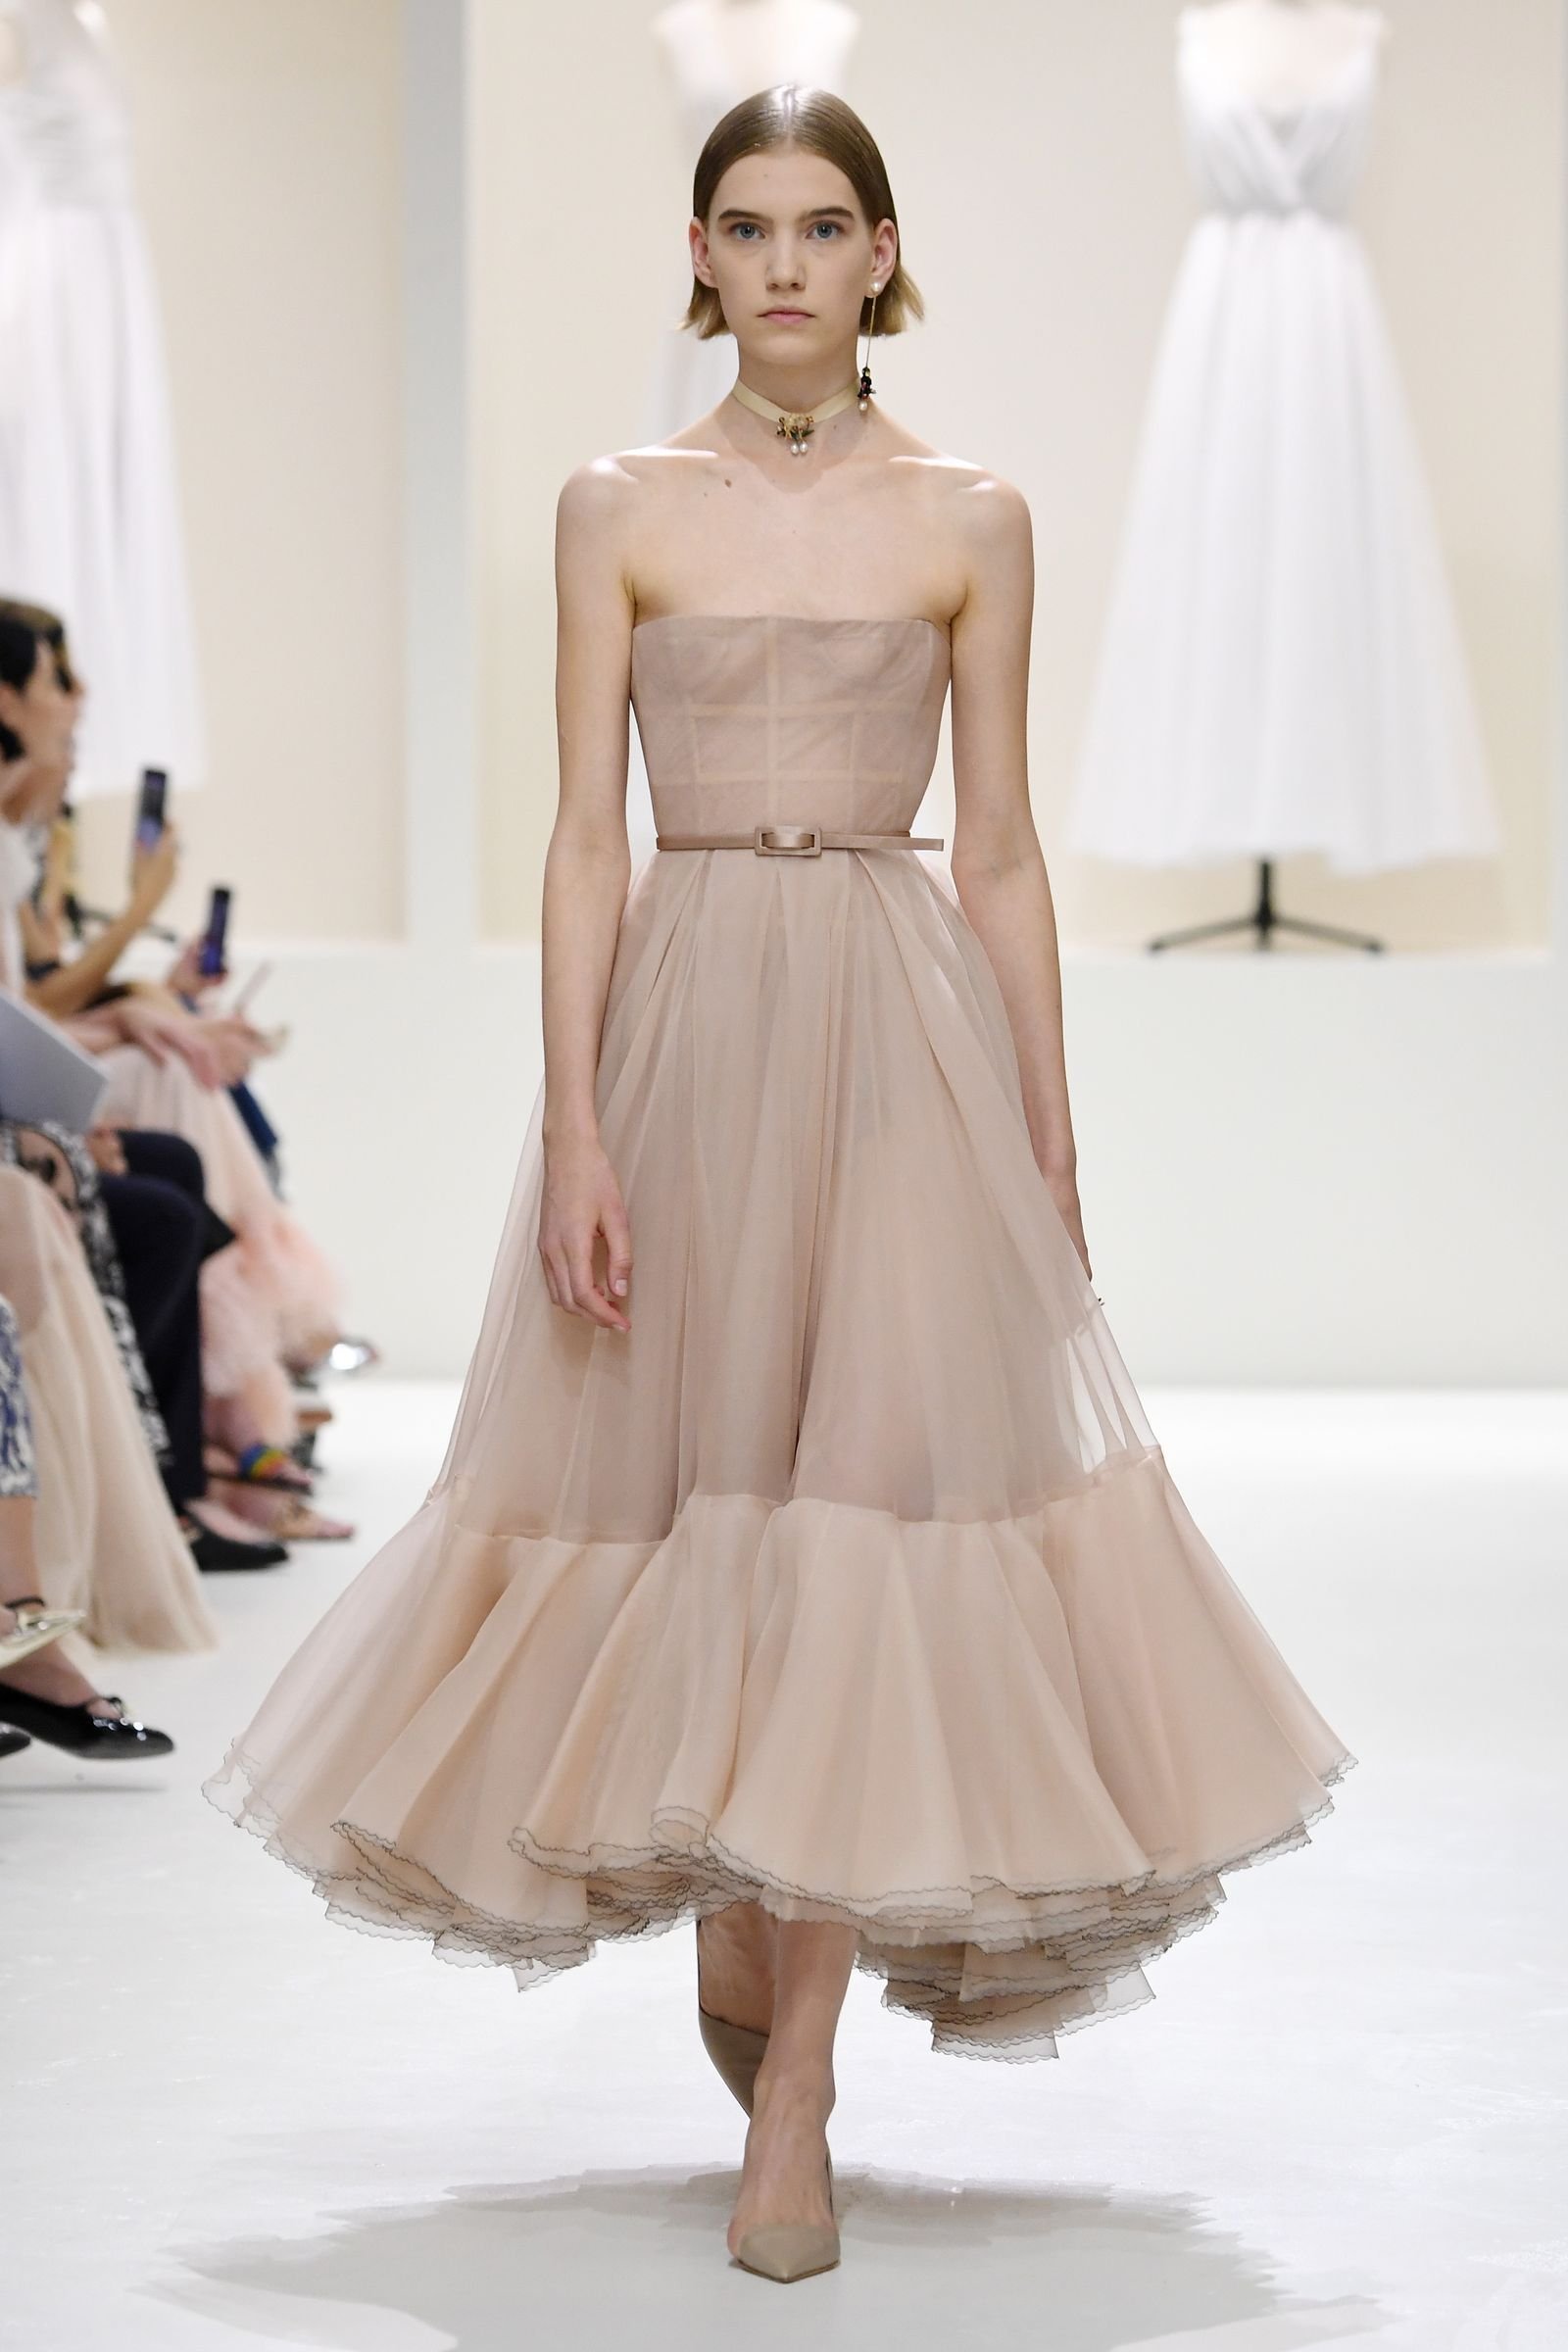 Dior's Fall '18 Couture Show Was Filled With Dresses Beyond Your Wildest Dreams